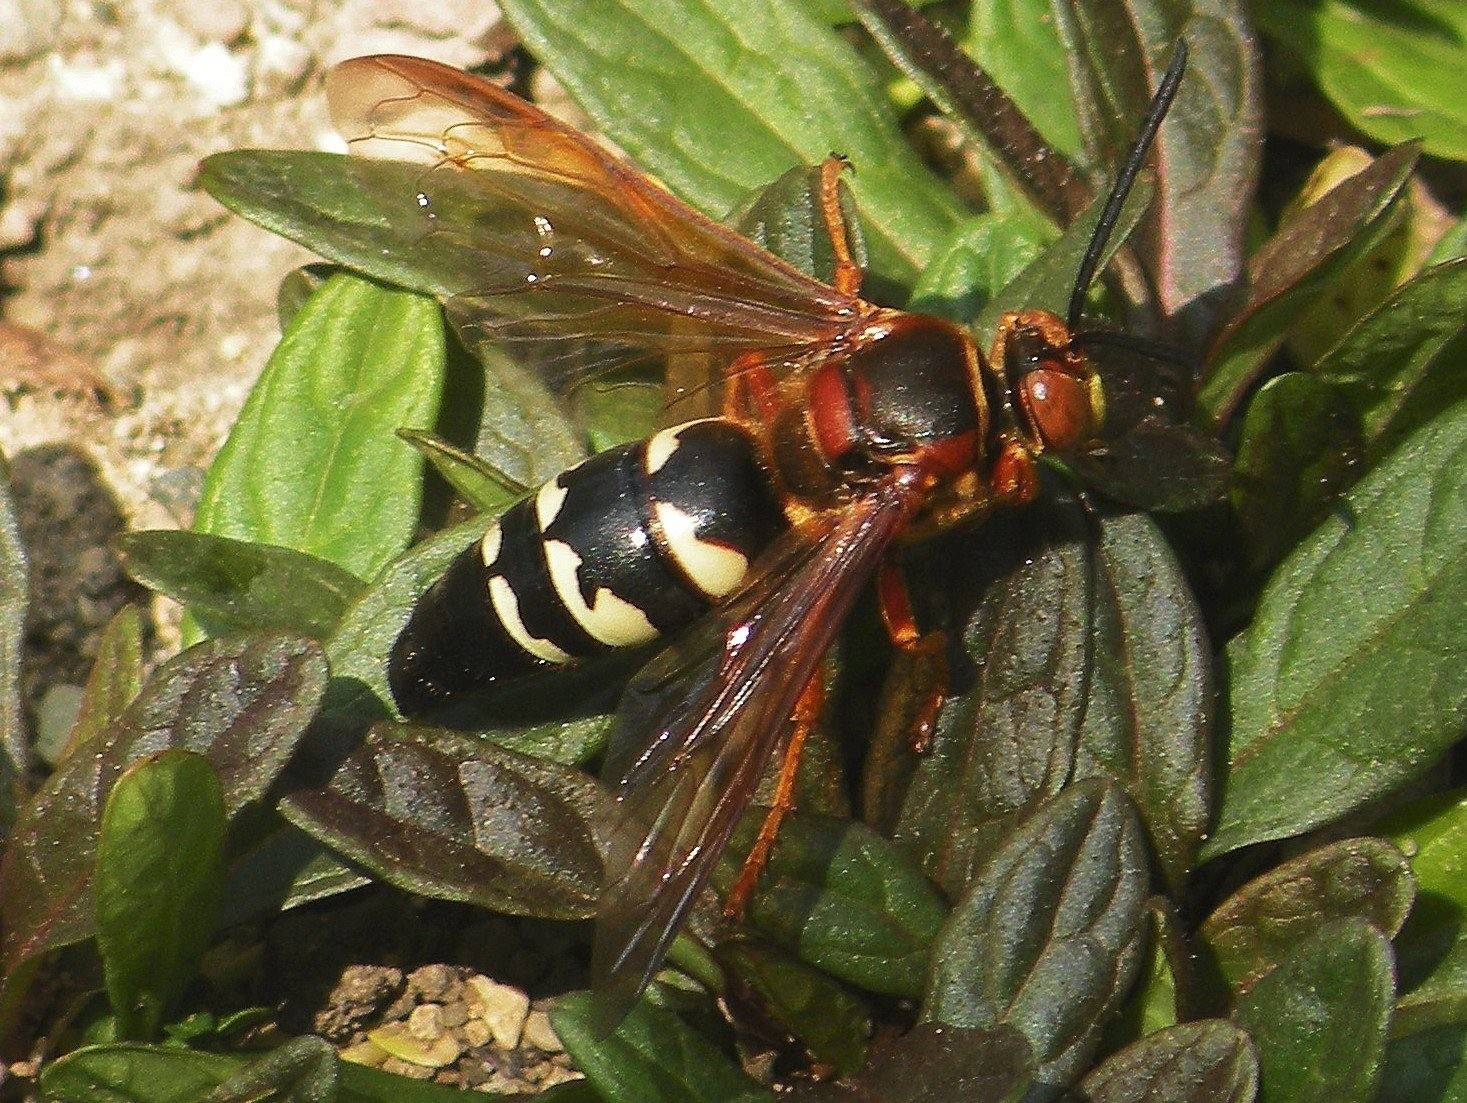 The cicada killer wasp is one of the many species of wasps that can be found in North America.